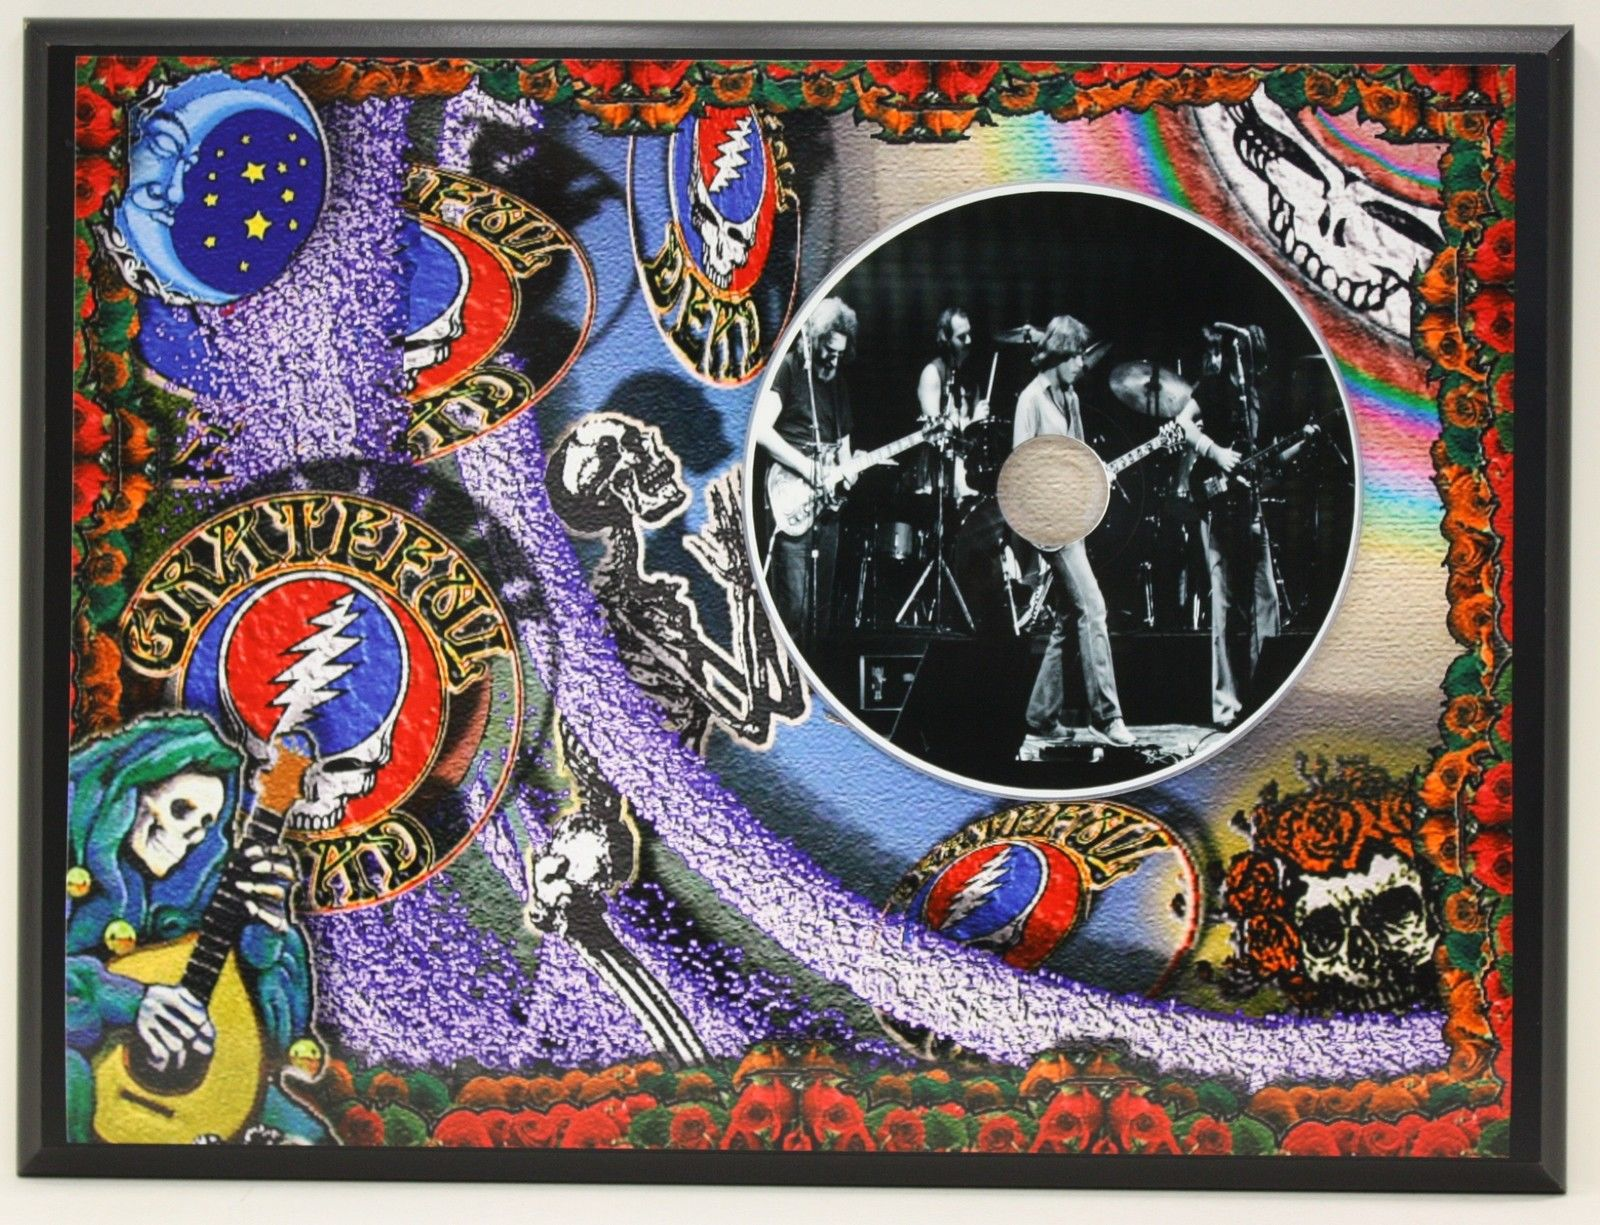 grateful dead picture cd ltd edition plaque free u s priority shipping other. Black Bedroom Furniture Sets. Home Design Ideas